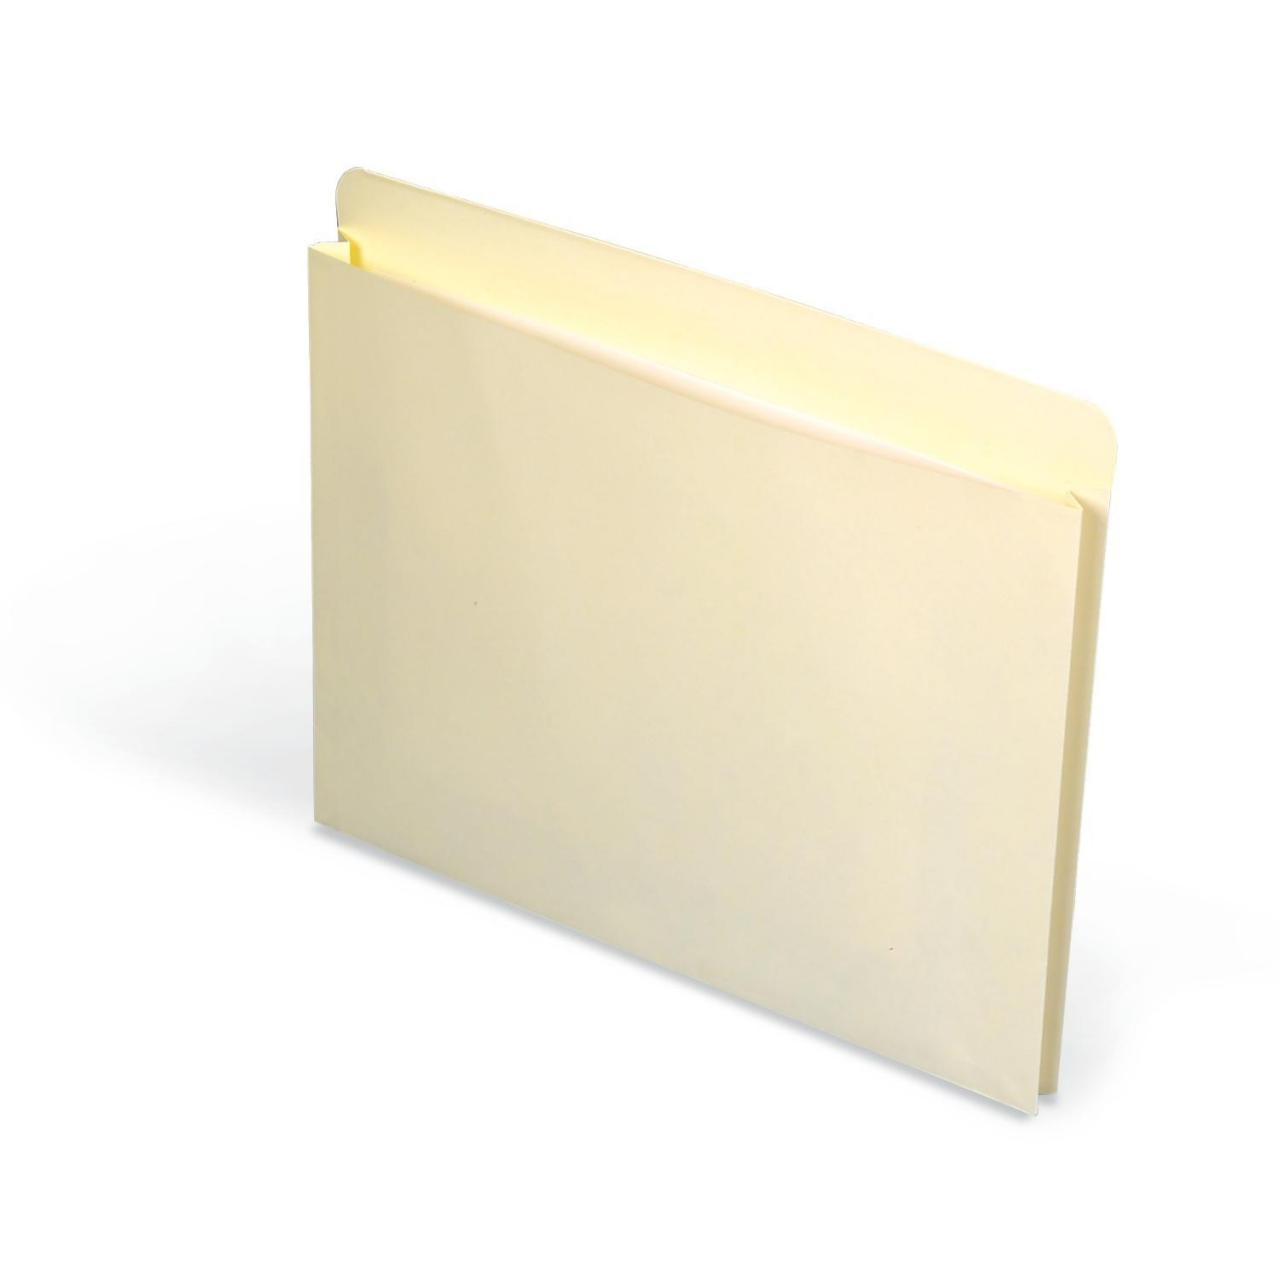 Wholesale Gaylord Archival Full Tab Legal Size Vertical File Folders (10-Pack) from china suppliers